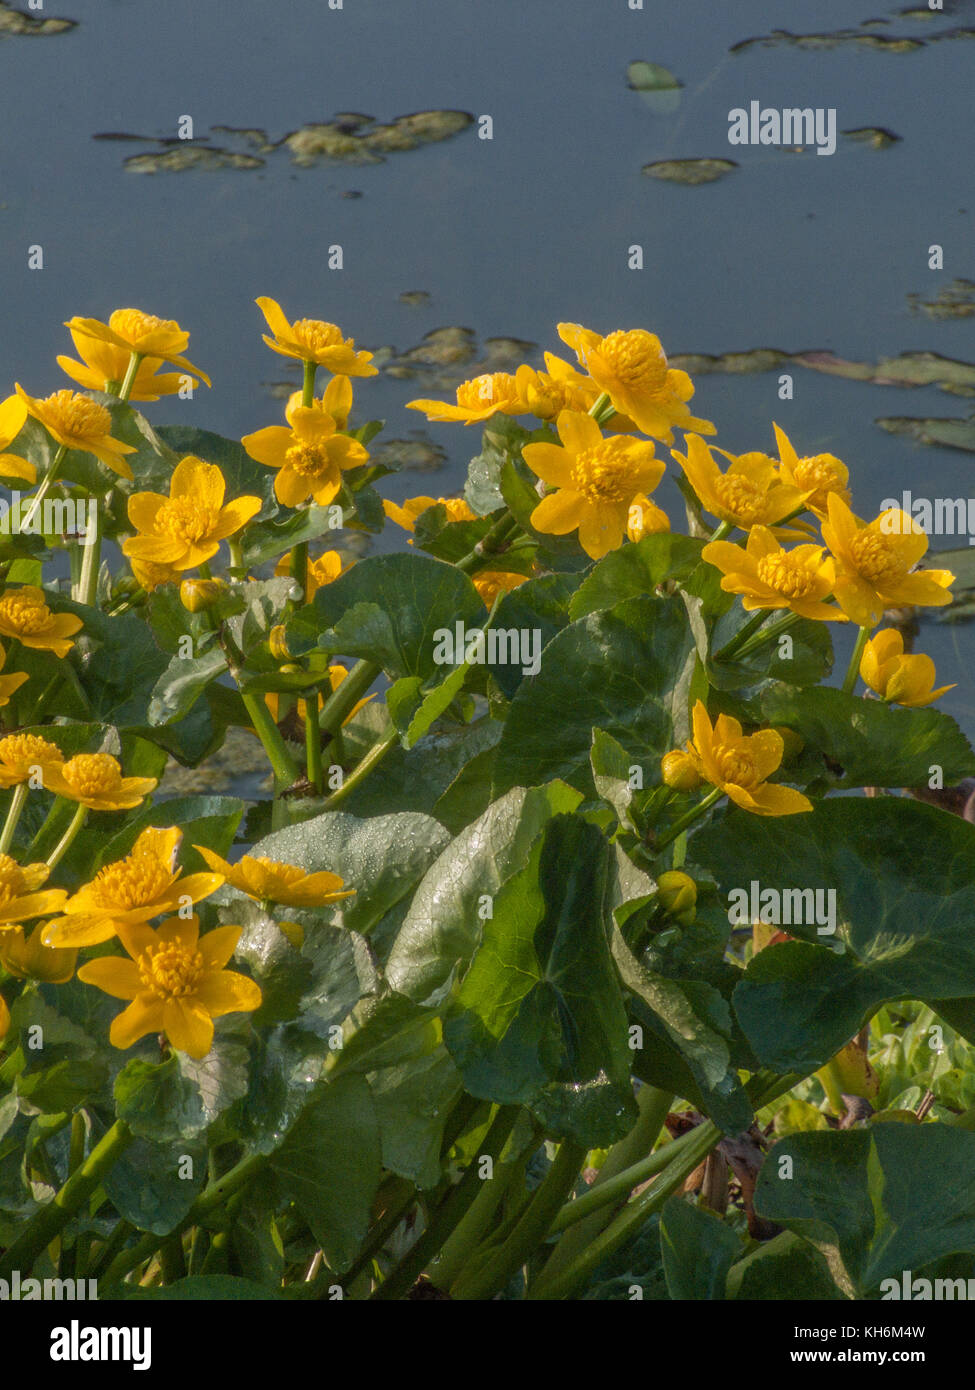 Yellow flowers and foliage of Marsh Marigold (Caltha palustris) in bright sunlight - Stock Image